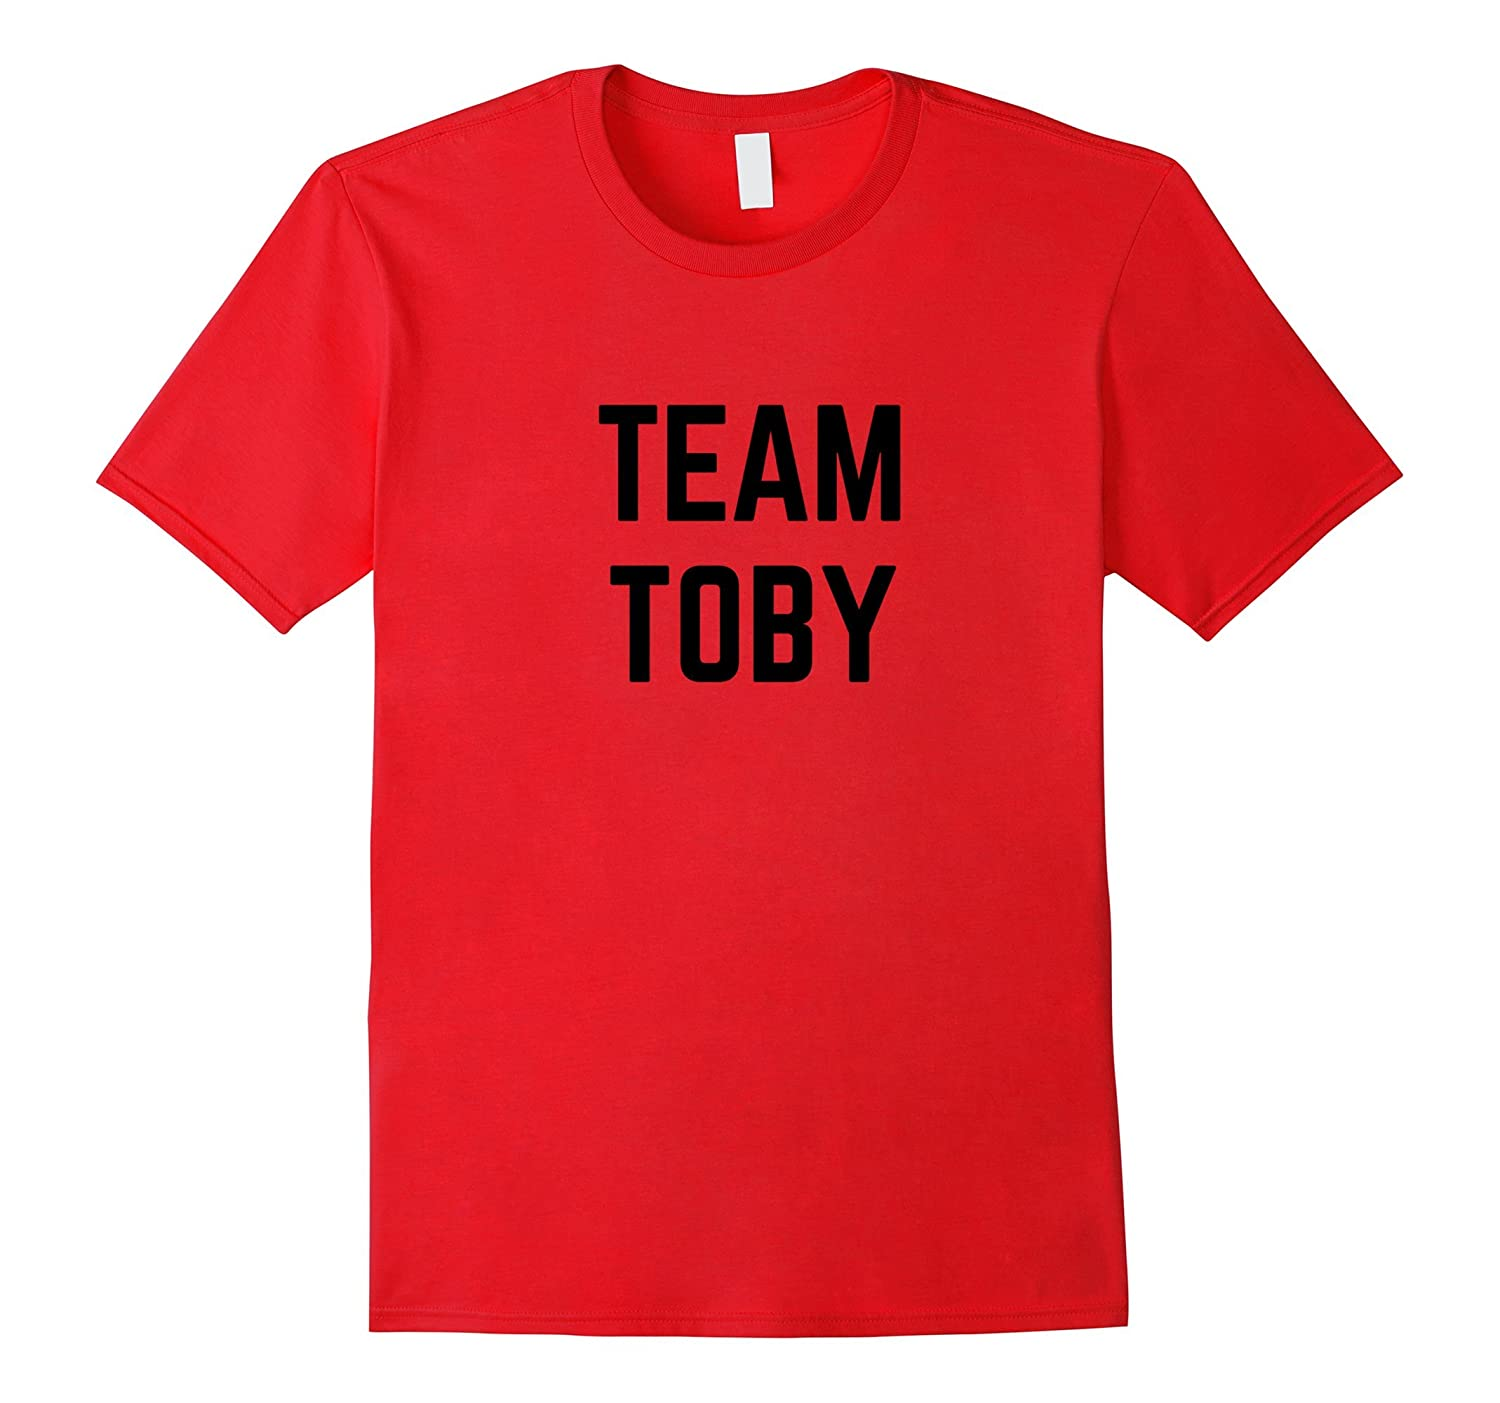 TEAM Toby  Friend Family Fan Club Support T-shirt-TH